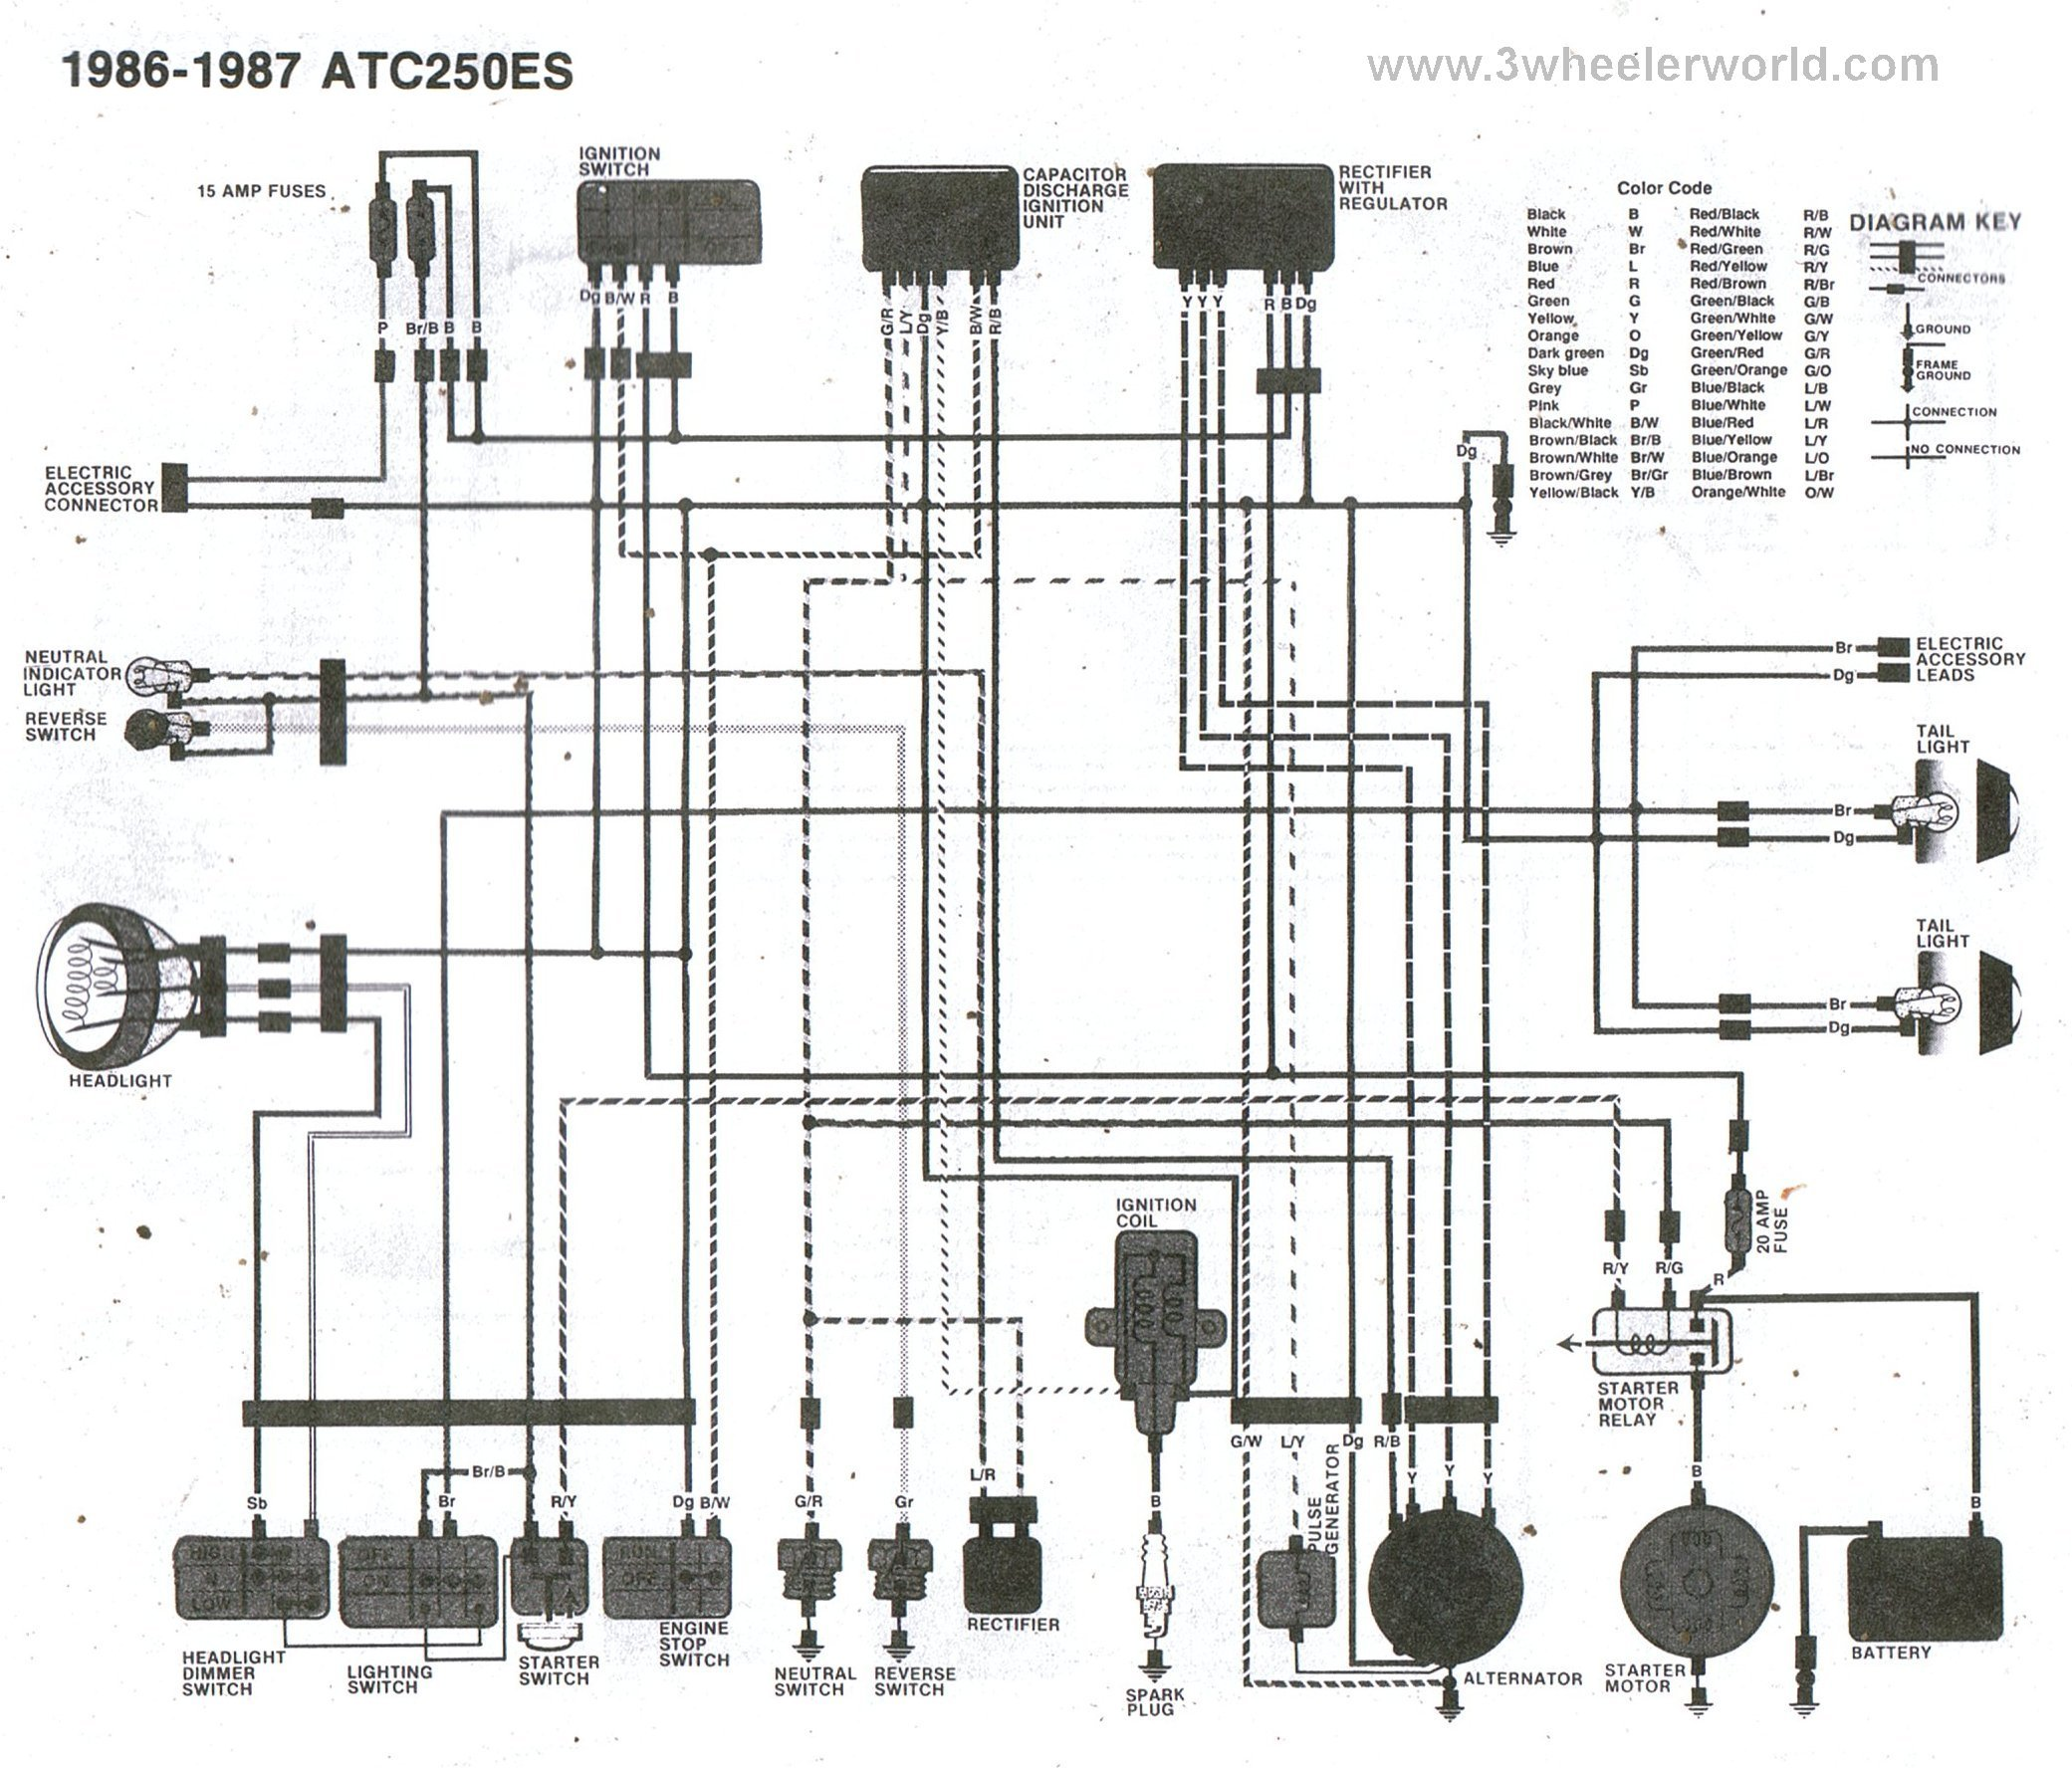 Trx 300 Wiring Diagram